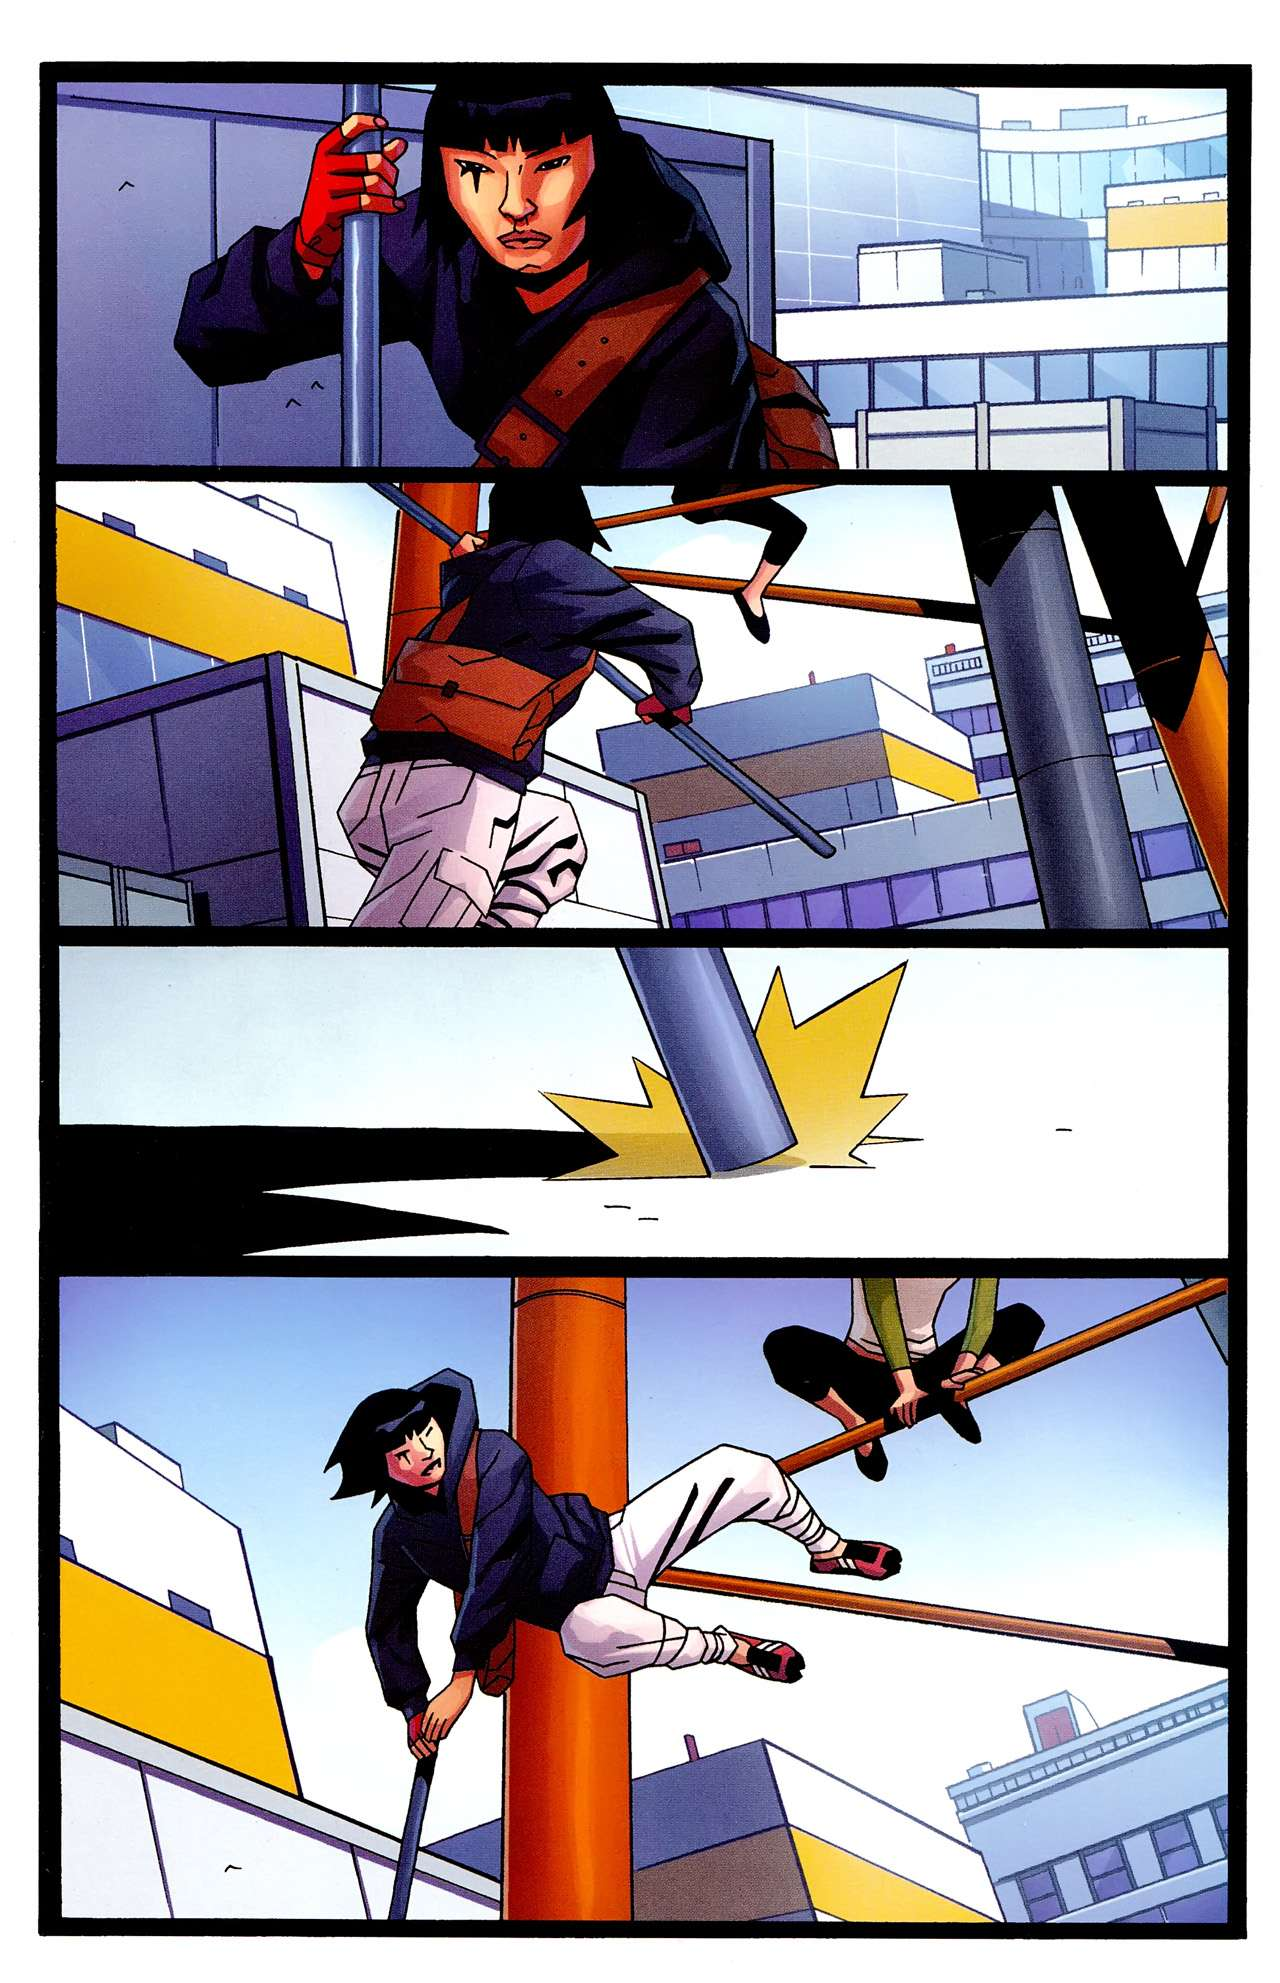 mirrors-edge-04-pg-16